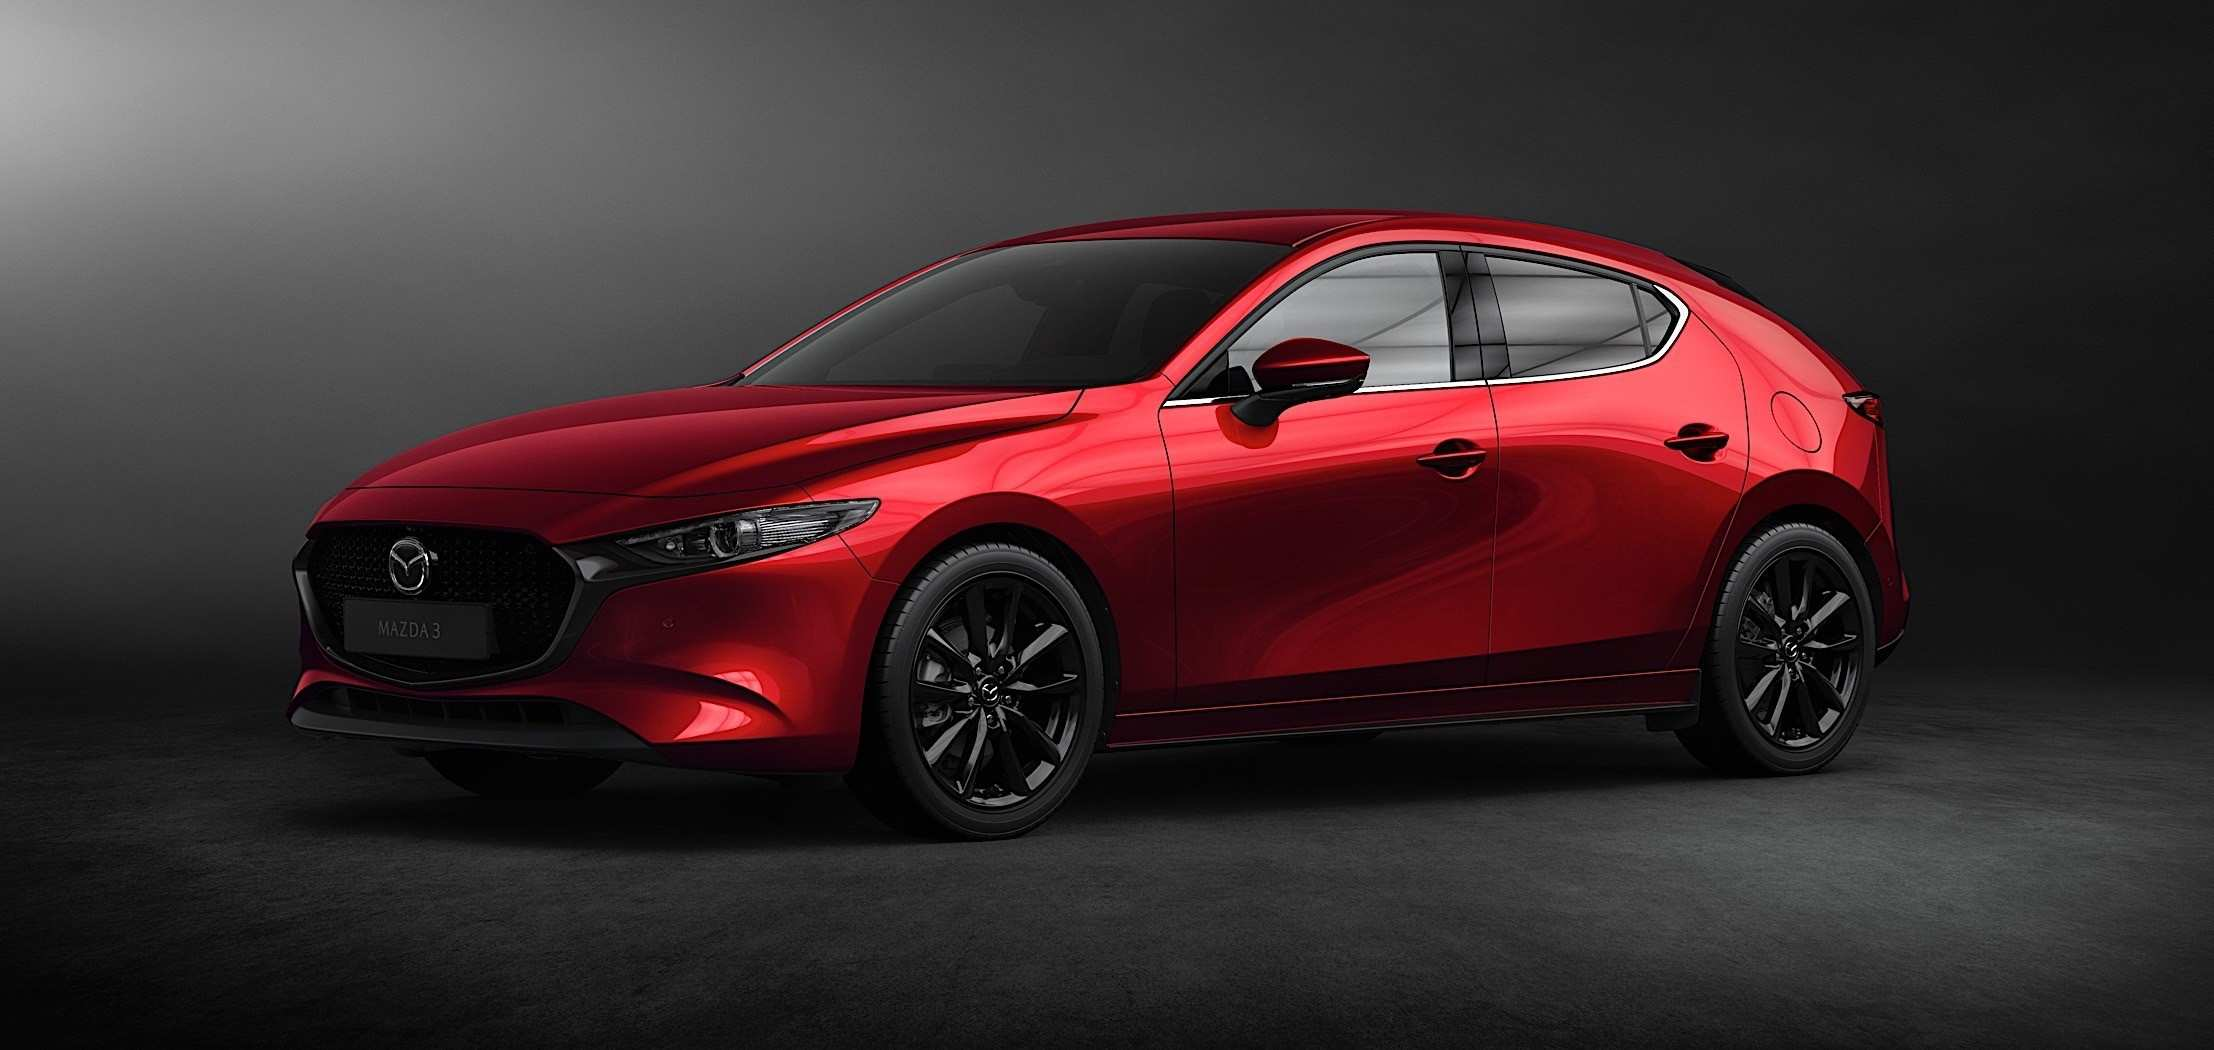 64 The Best 2020 Mazda 3 Length Configurations